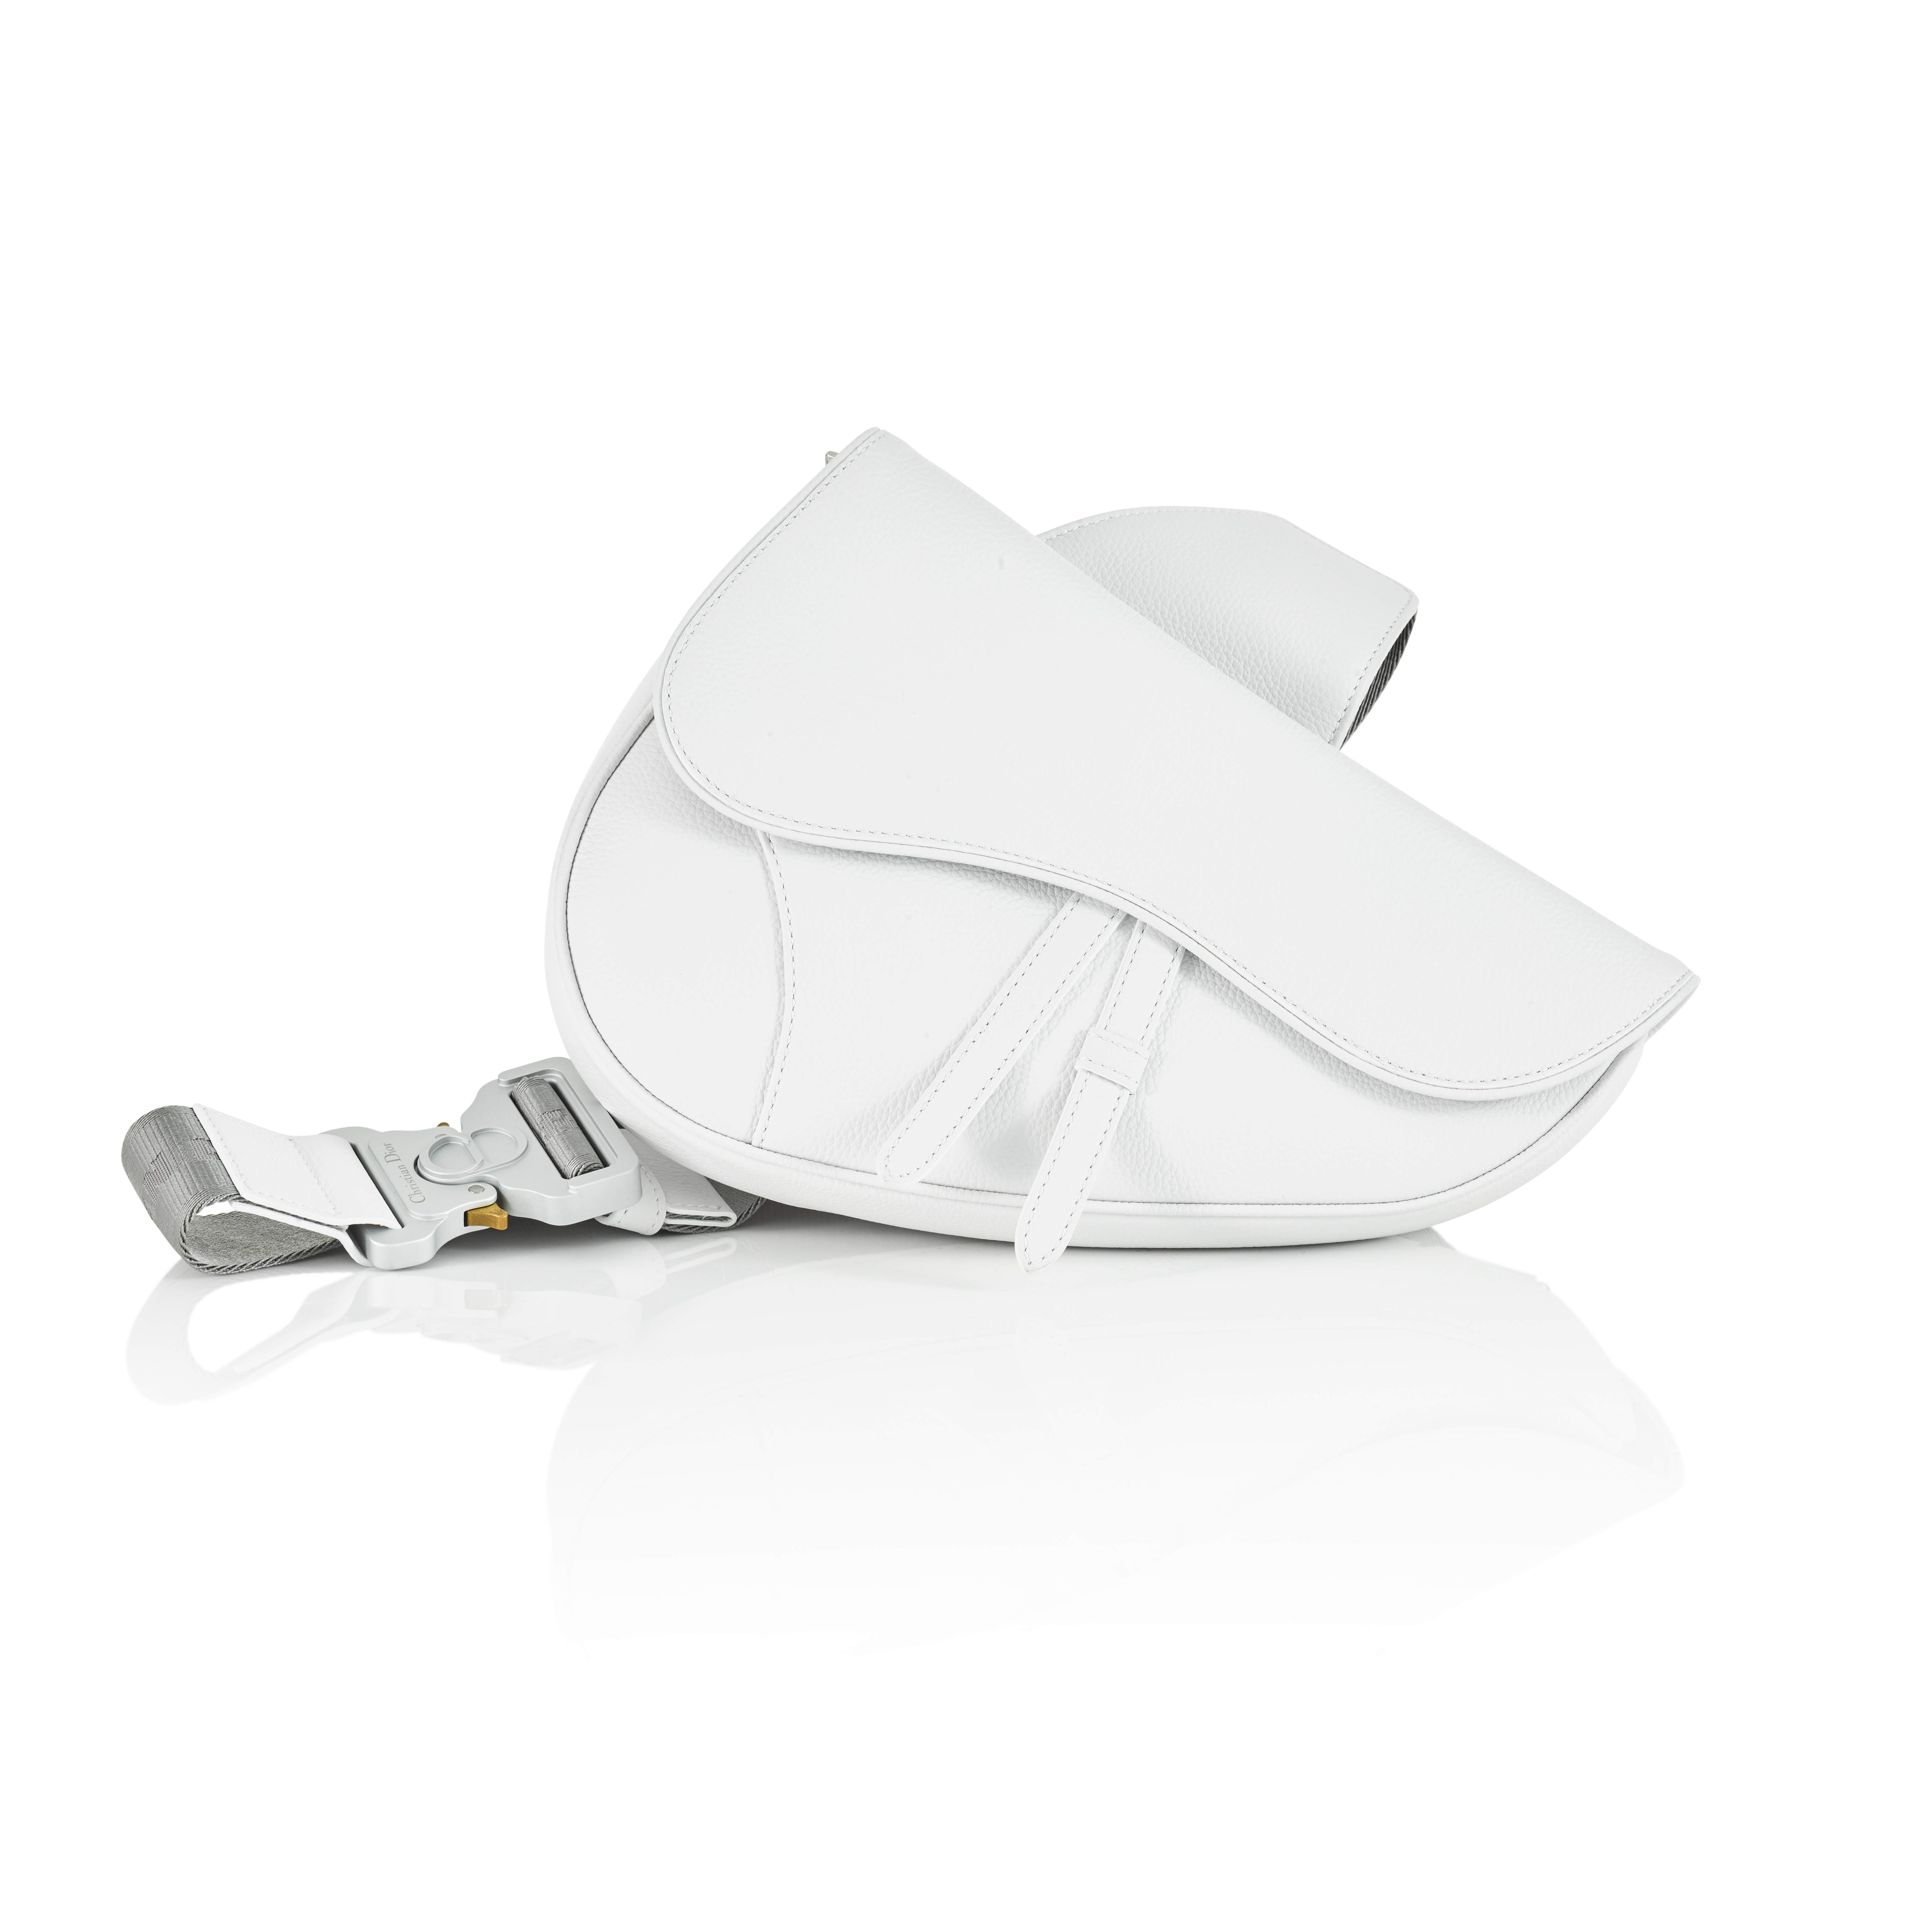 View full screen - View 1 of Lot 71. White Saddle Bag in Calfskin Leather, 2019.